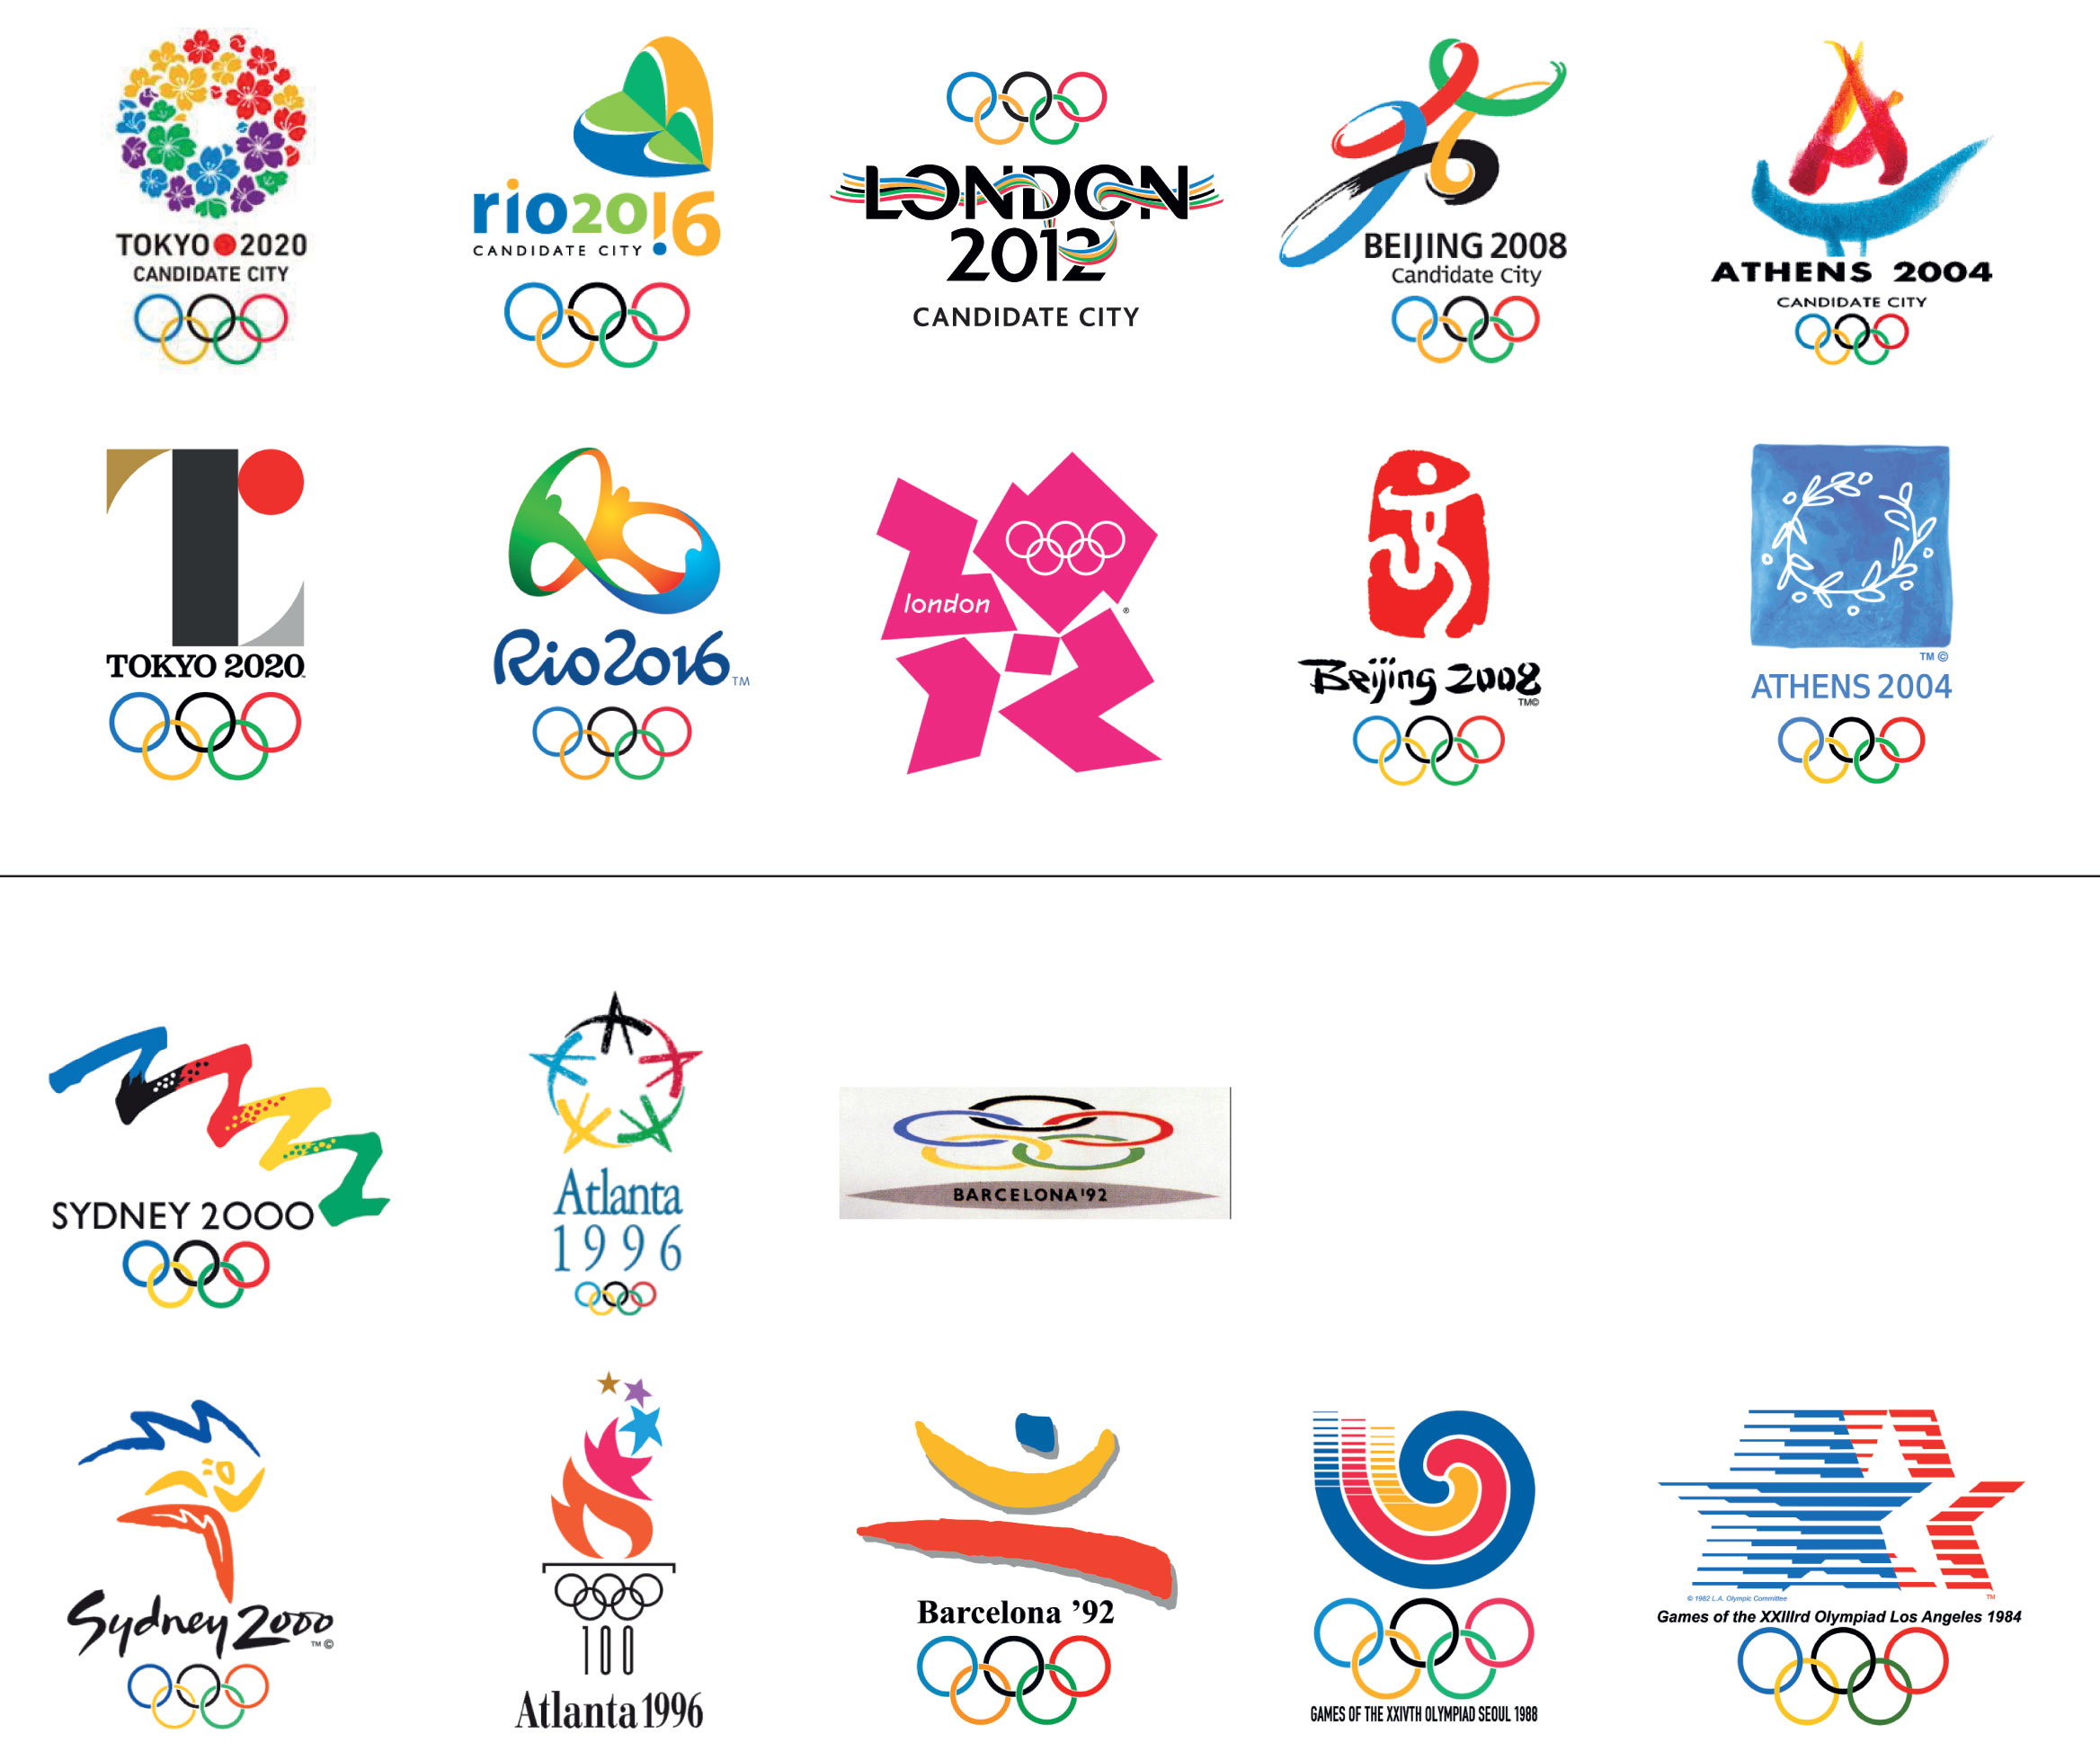 *Note—the Tokyo 2020 logo was withdrawn in 2015 due to allegations of plagiarism. Bid logos for Barcelona, Seoul and LA were not available.